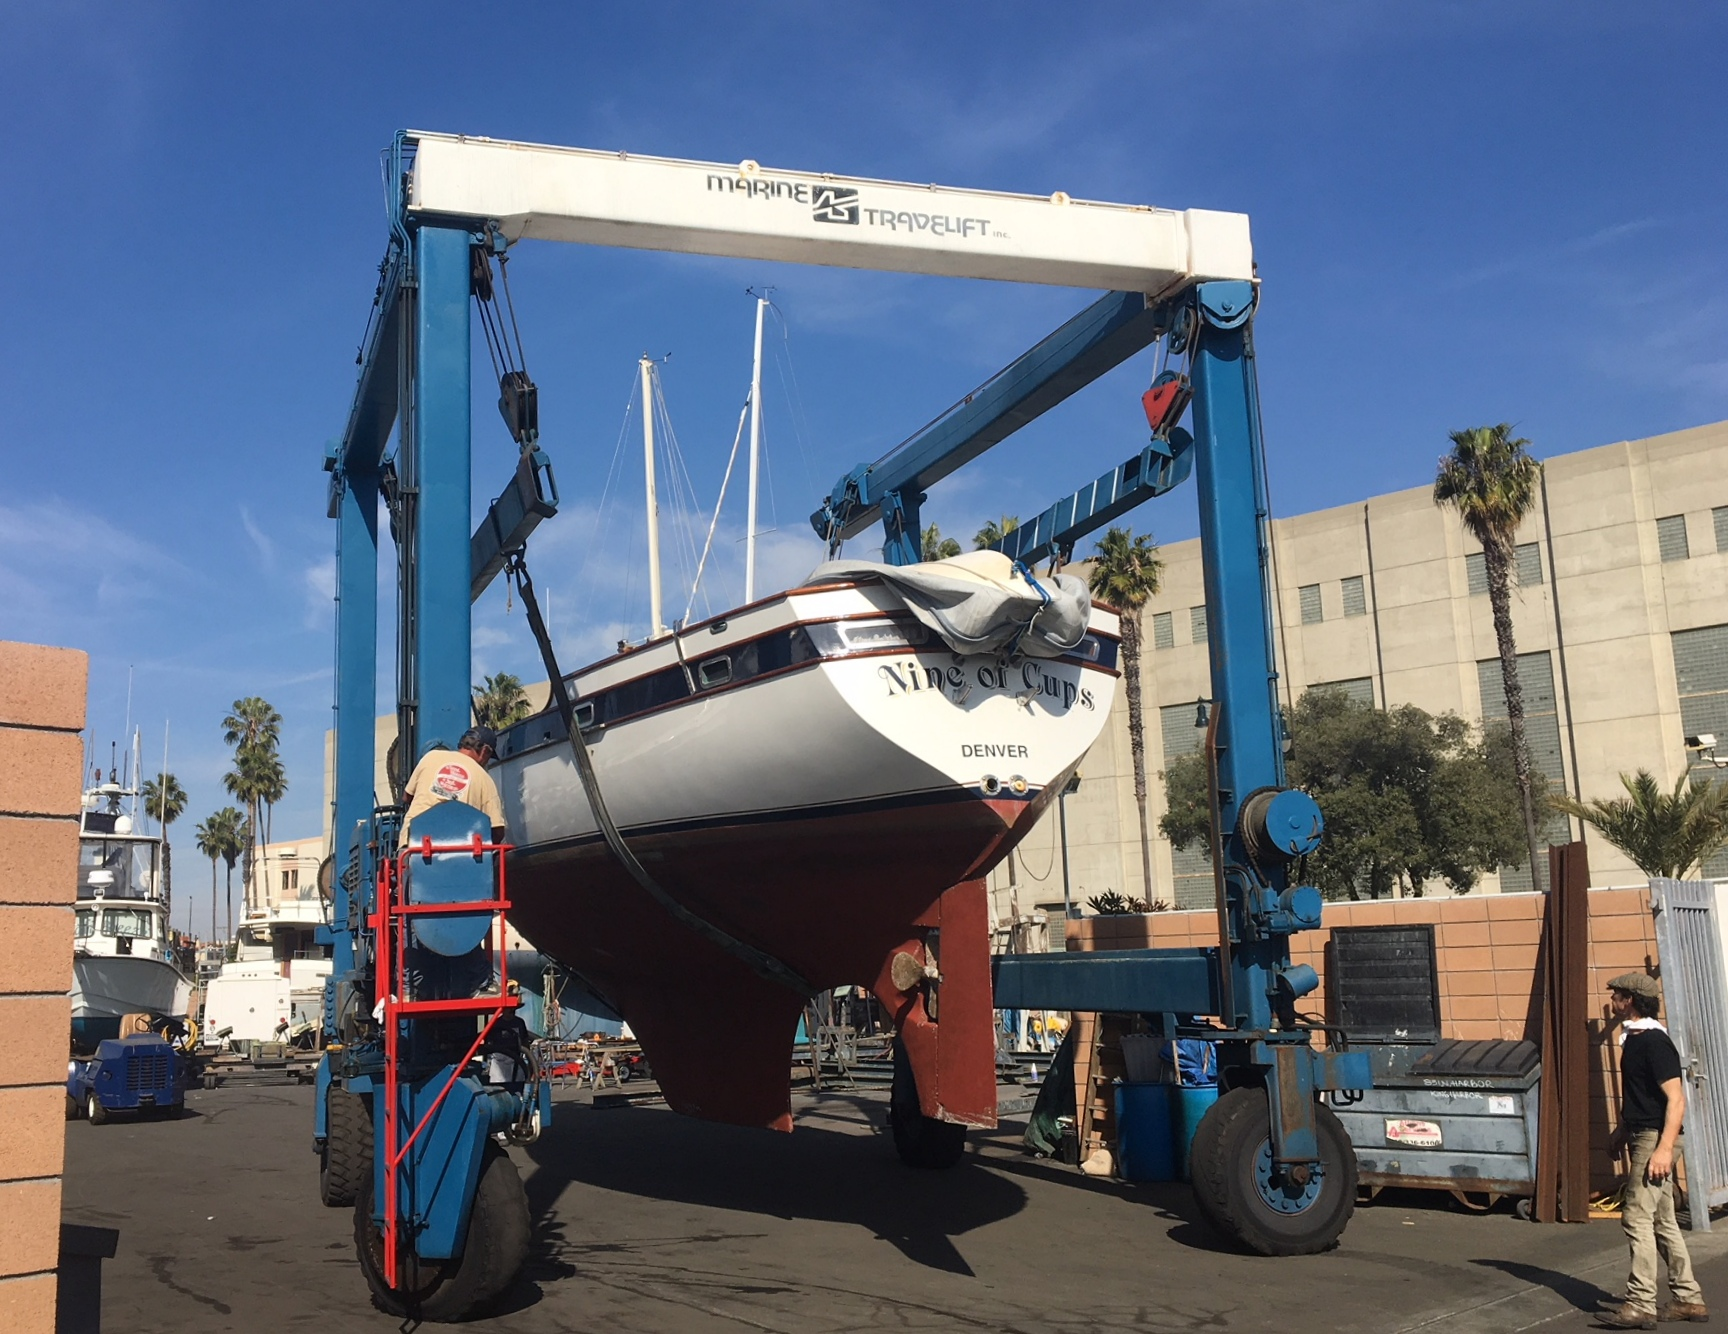 Cups arrives at King Harbor Marina in Redondo Beach, California. Check out those palm trees!